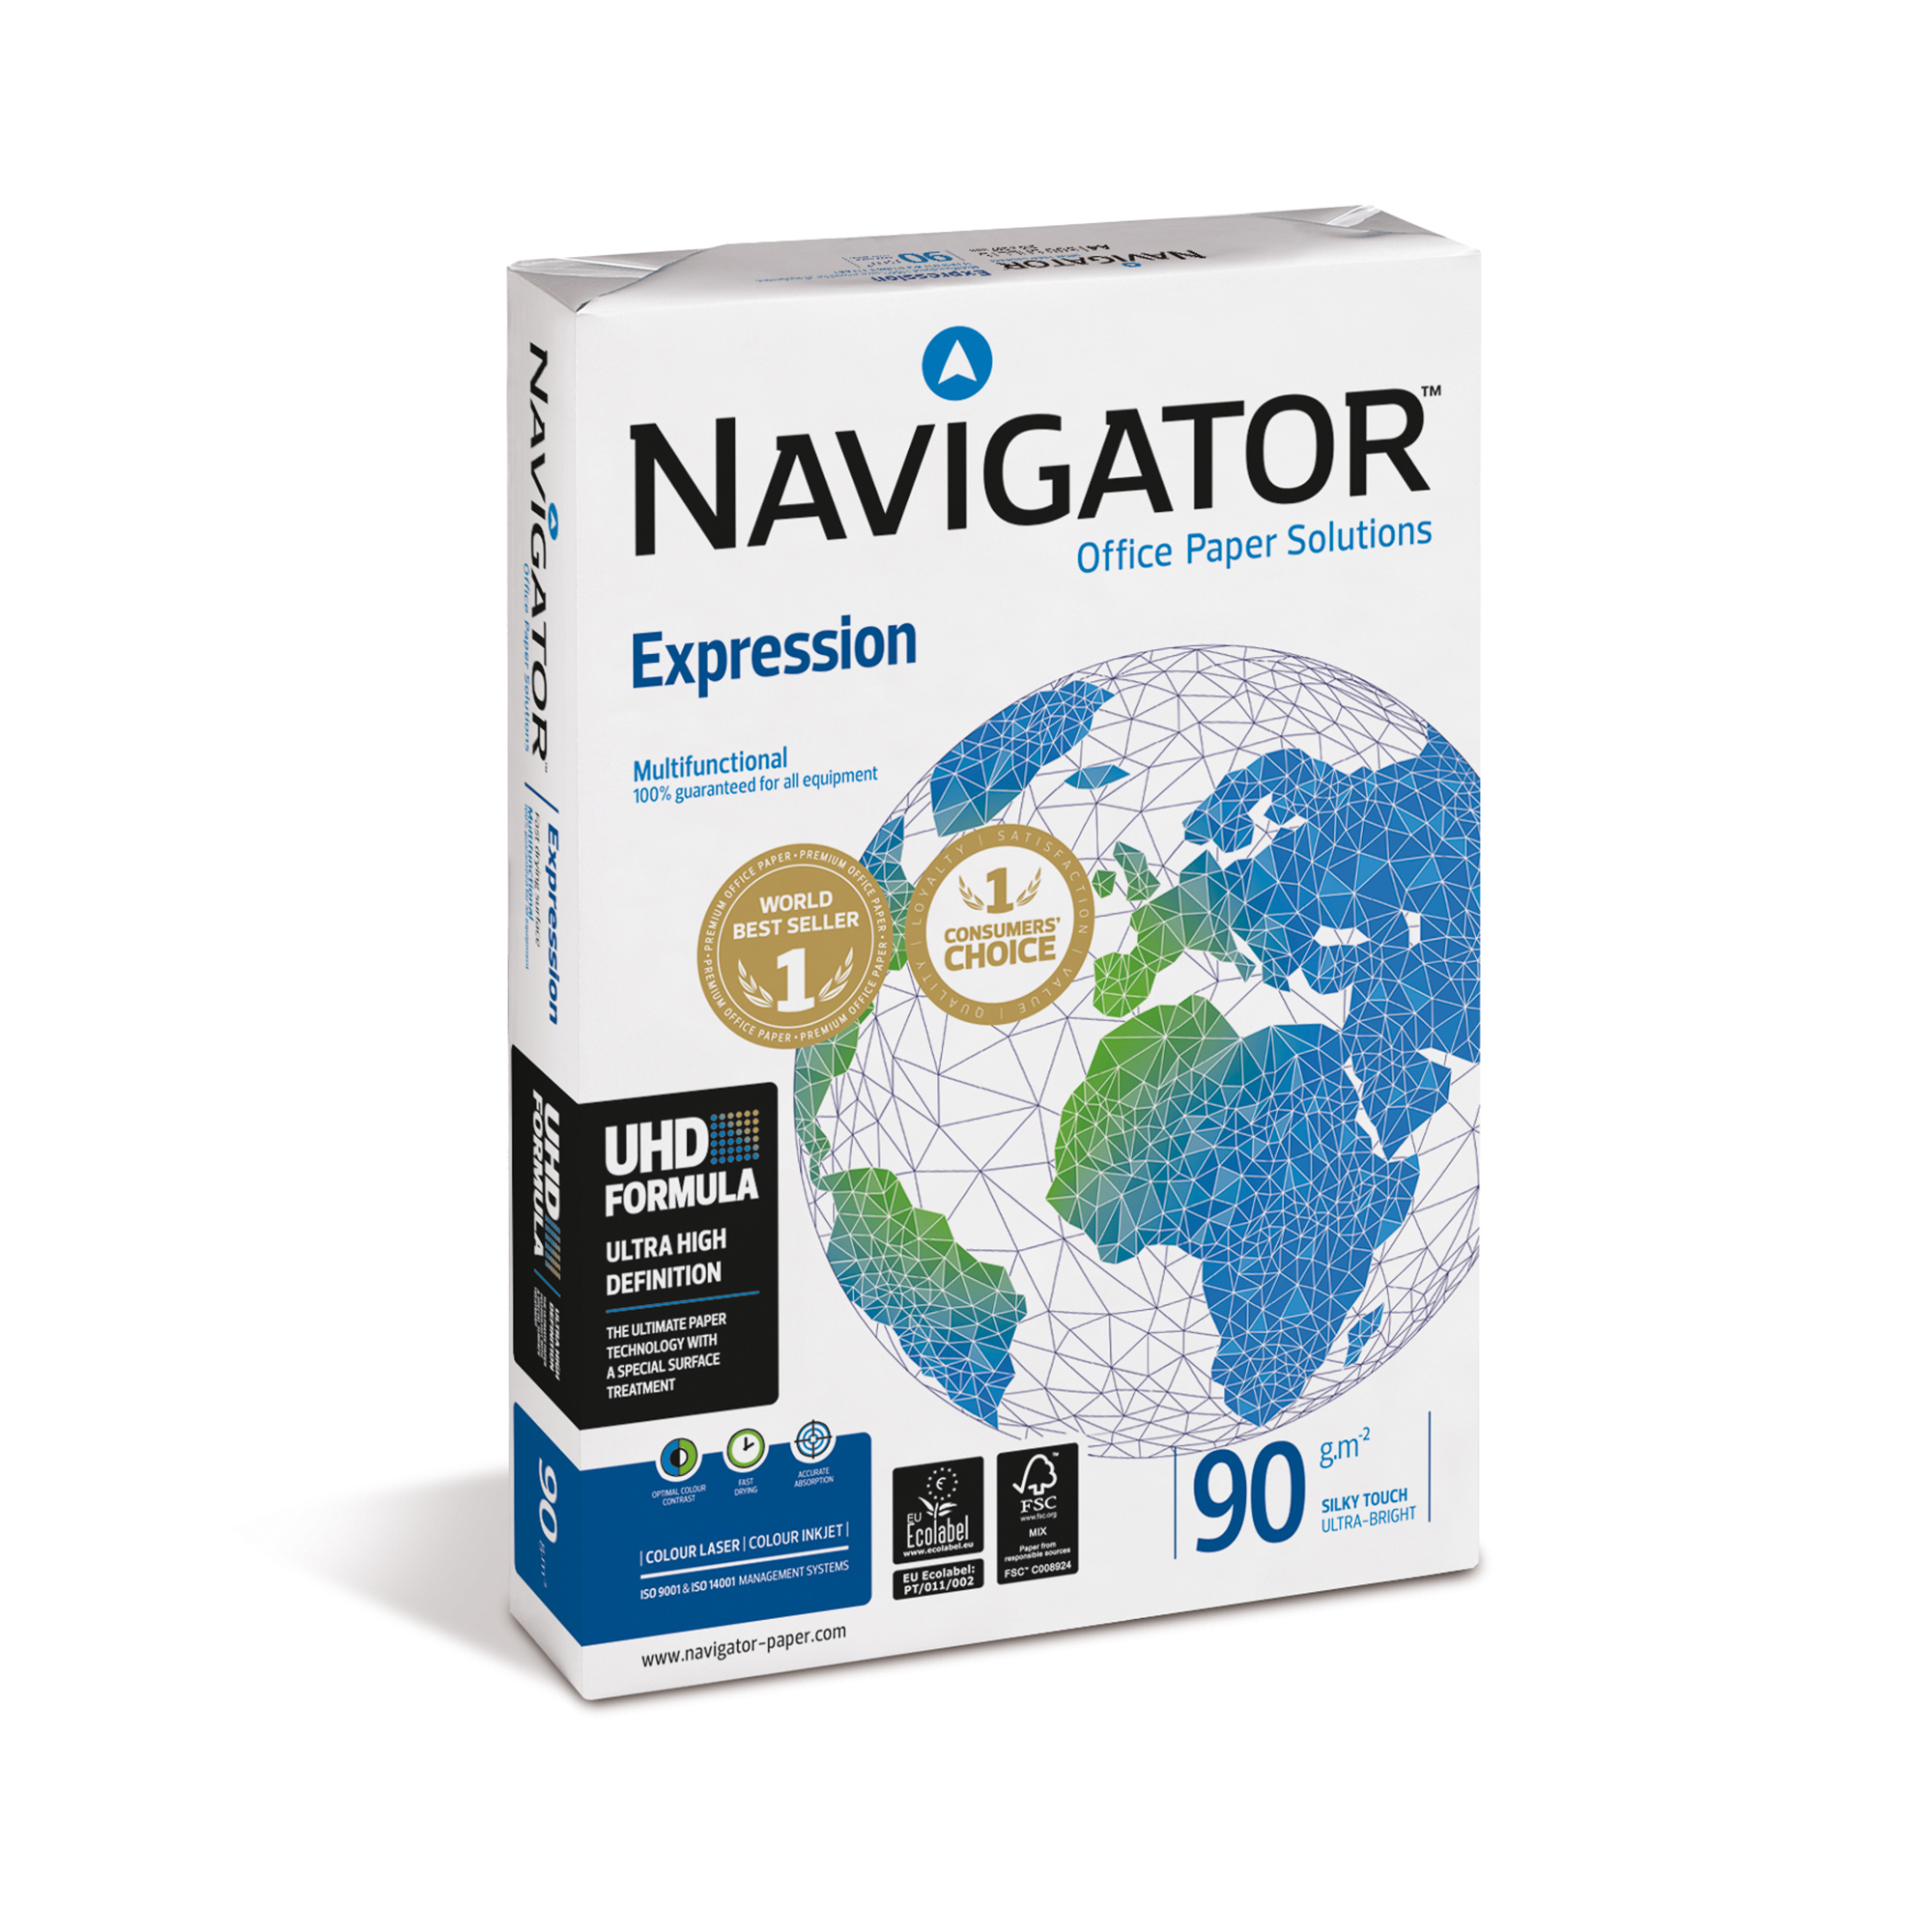 A3 Navigator Expression Paper Ream-Wrapped 90gsm A3 White Ref NAV90A3 500 SheetsREDEMPTION April-June 20